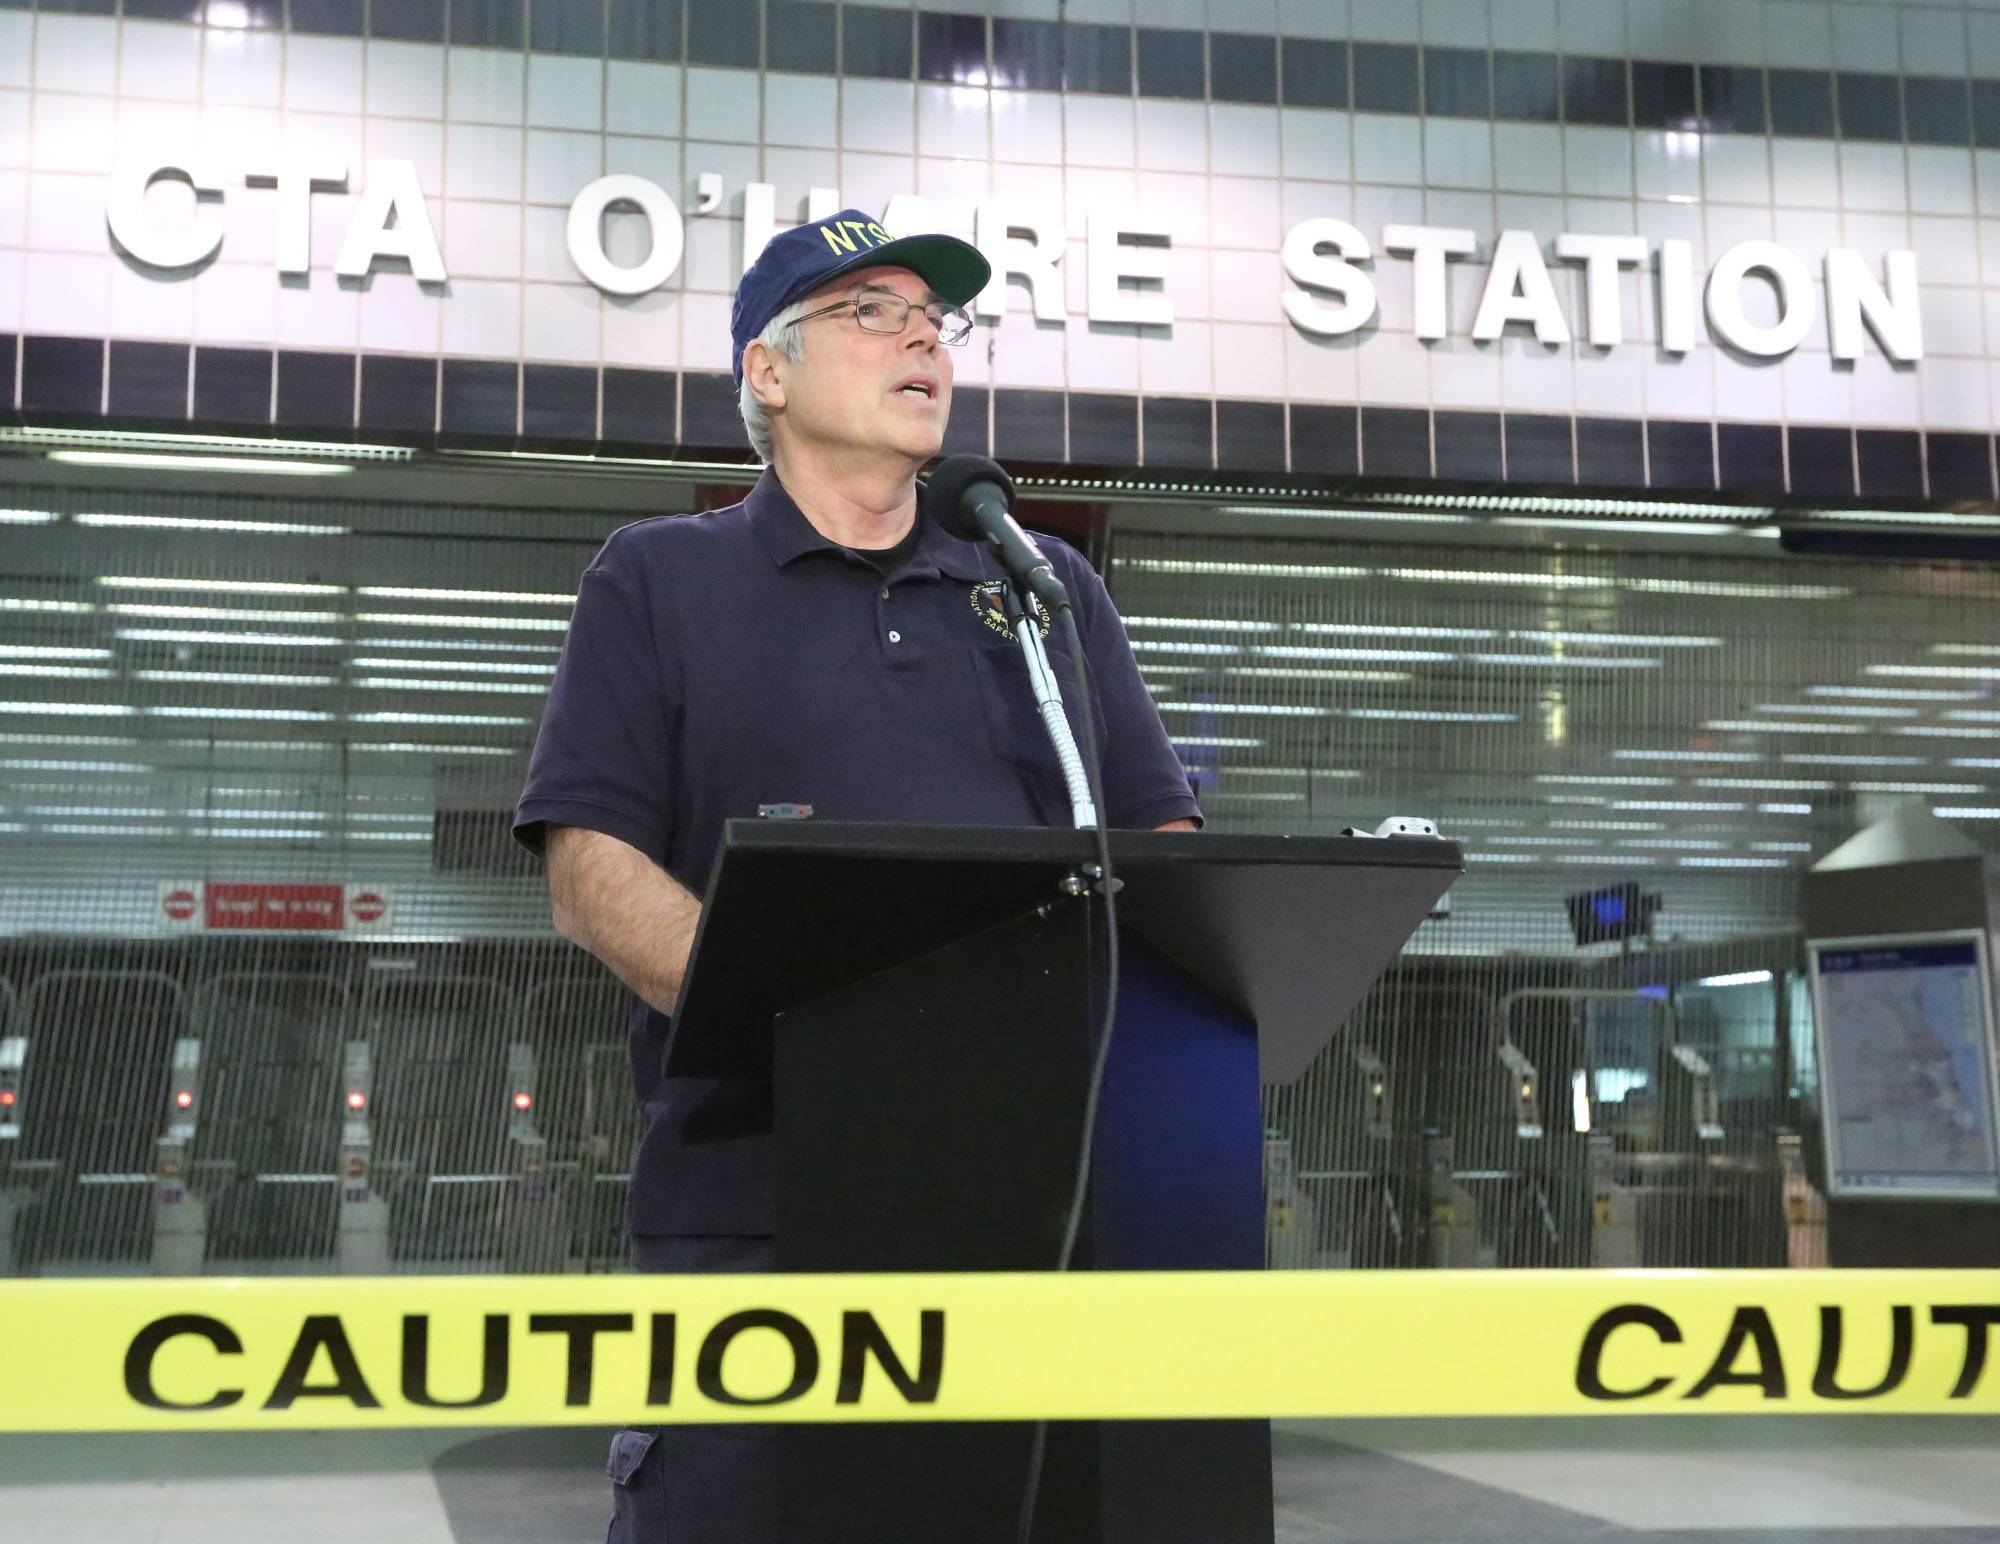 National Transportation Safety Board investigator Ted Turpin said Tuesday that investigators still are analyzing the cause of a CTA crash at O'Hare that injured 32.